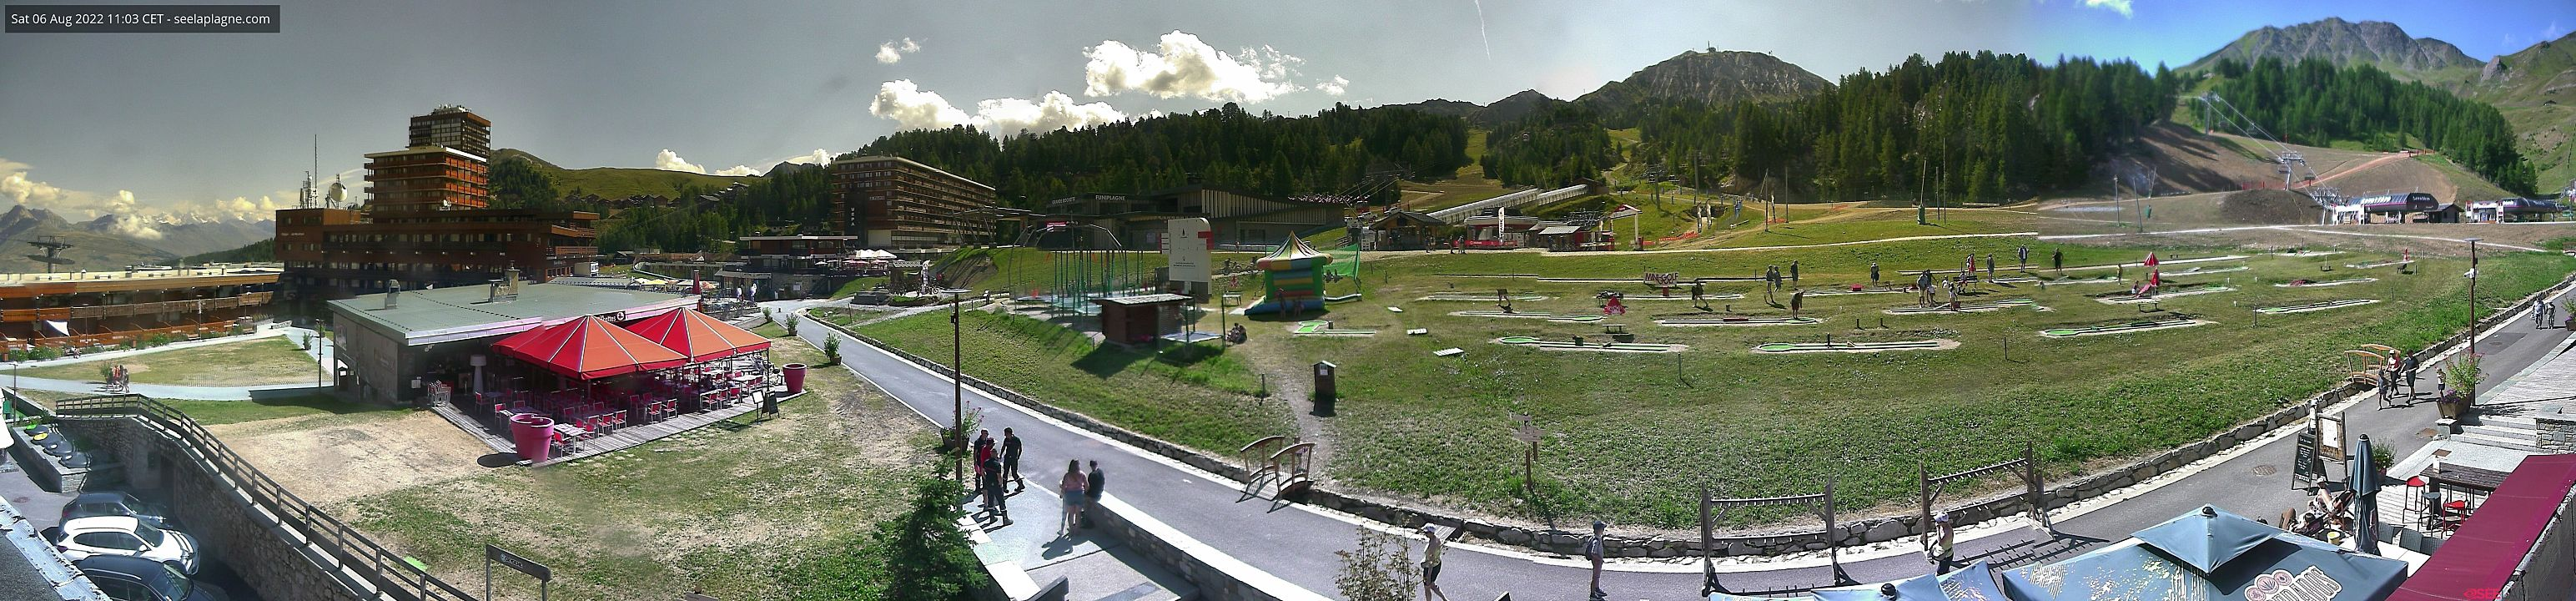 Webcam <br><span>Webcam La Plagne</span>